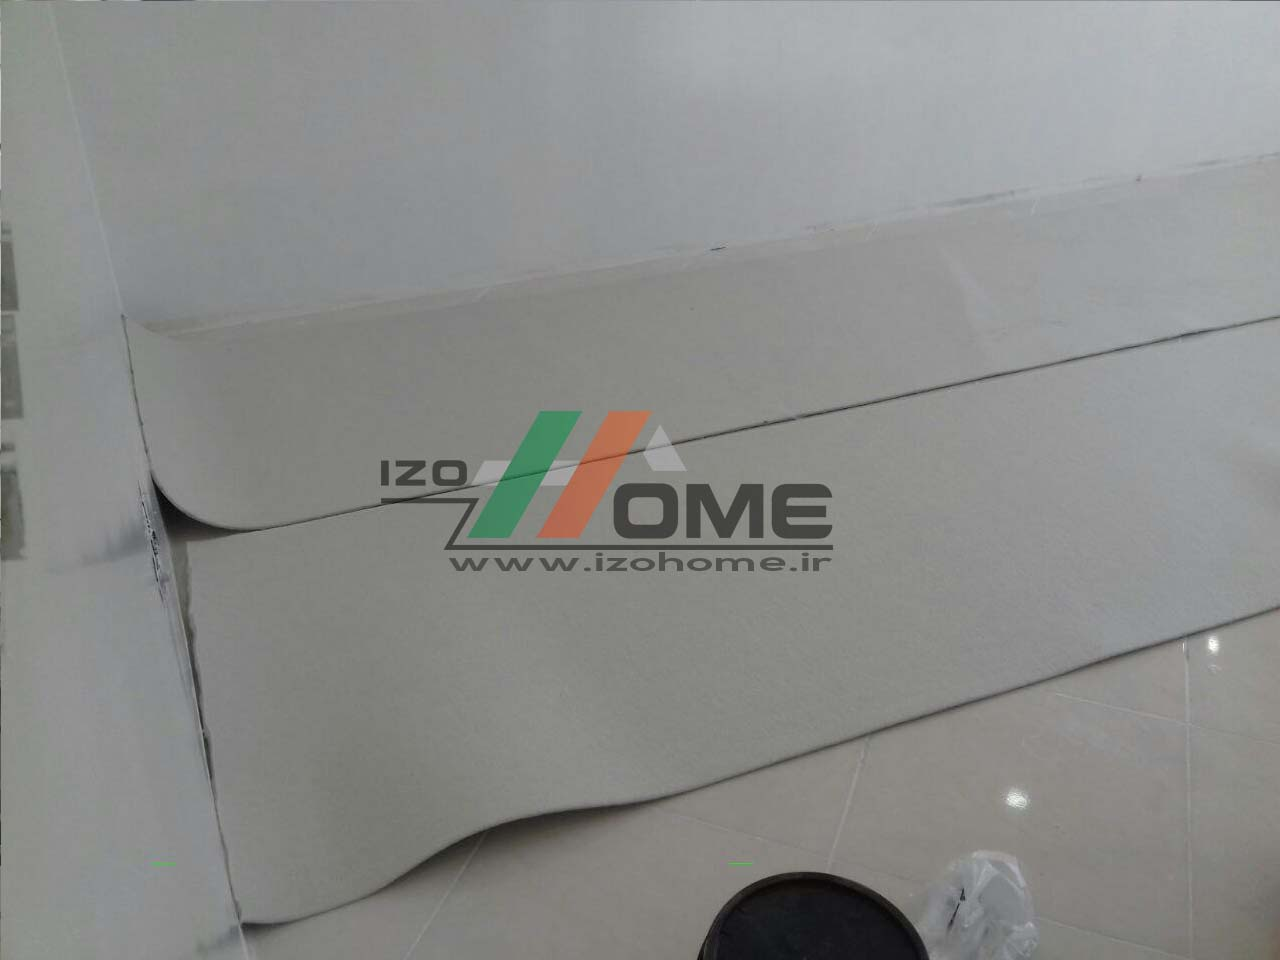 izohome73 - Sound insulation for the floor